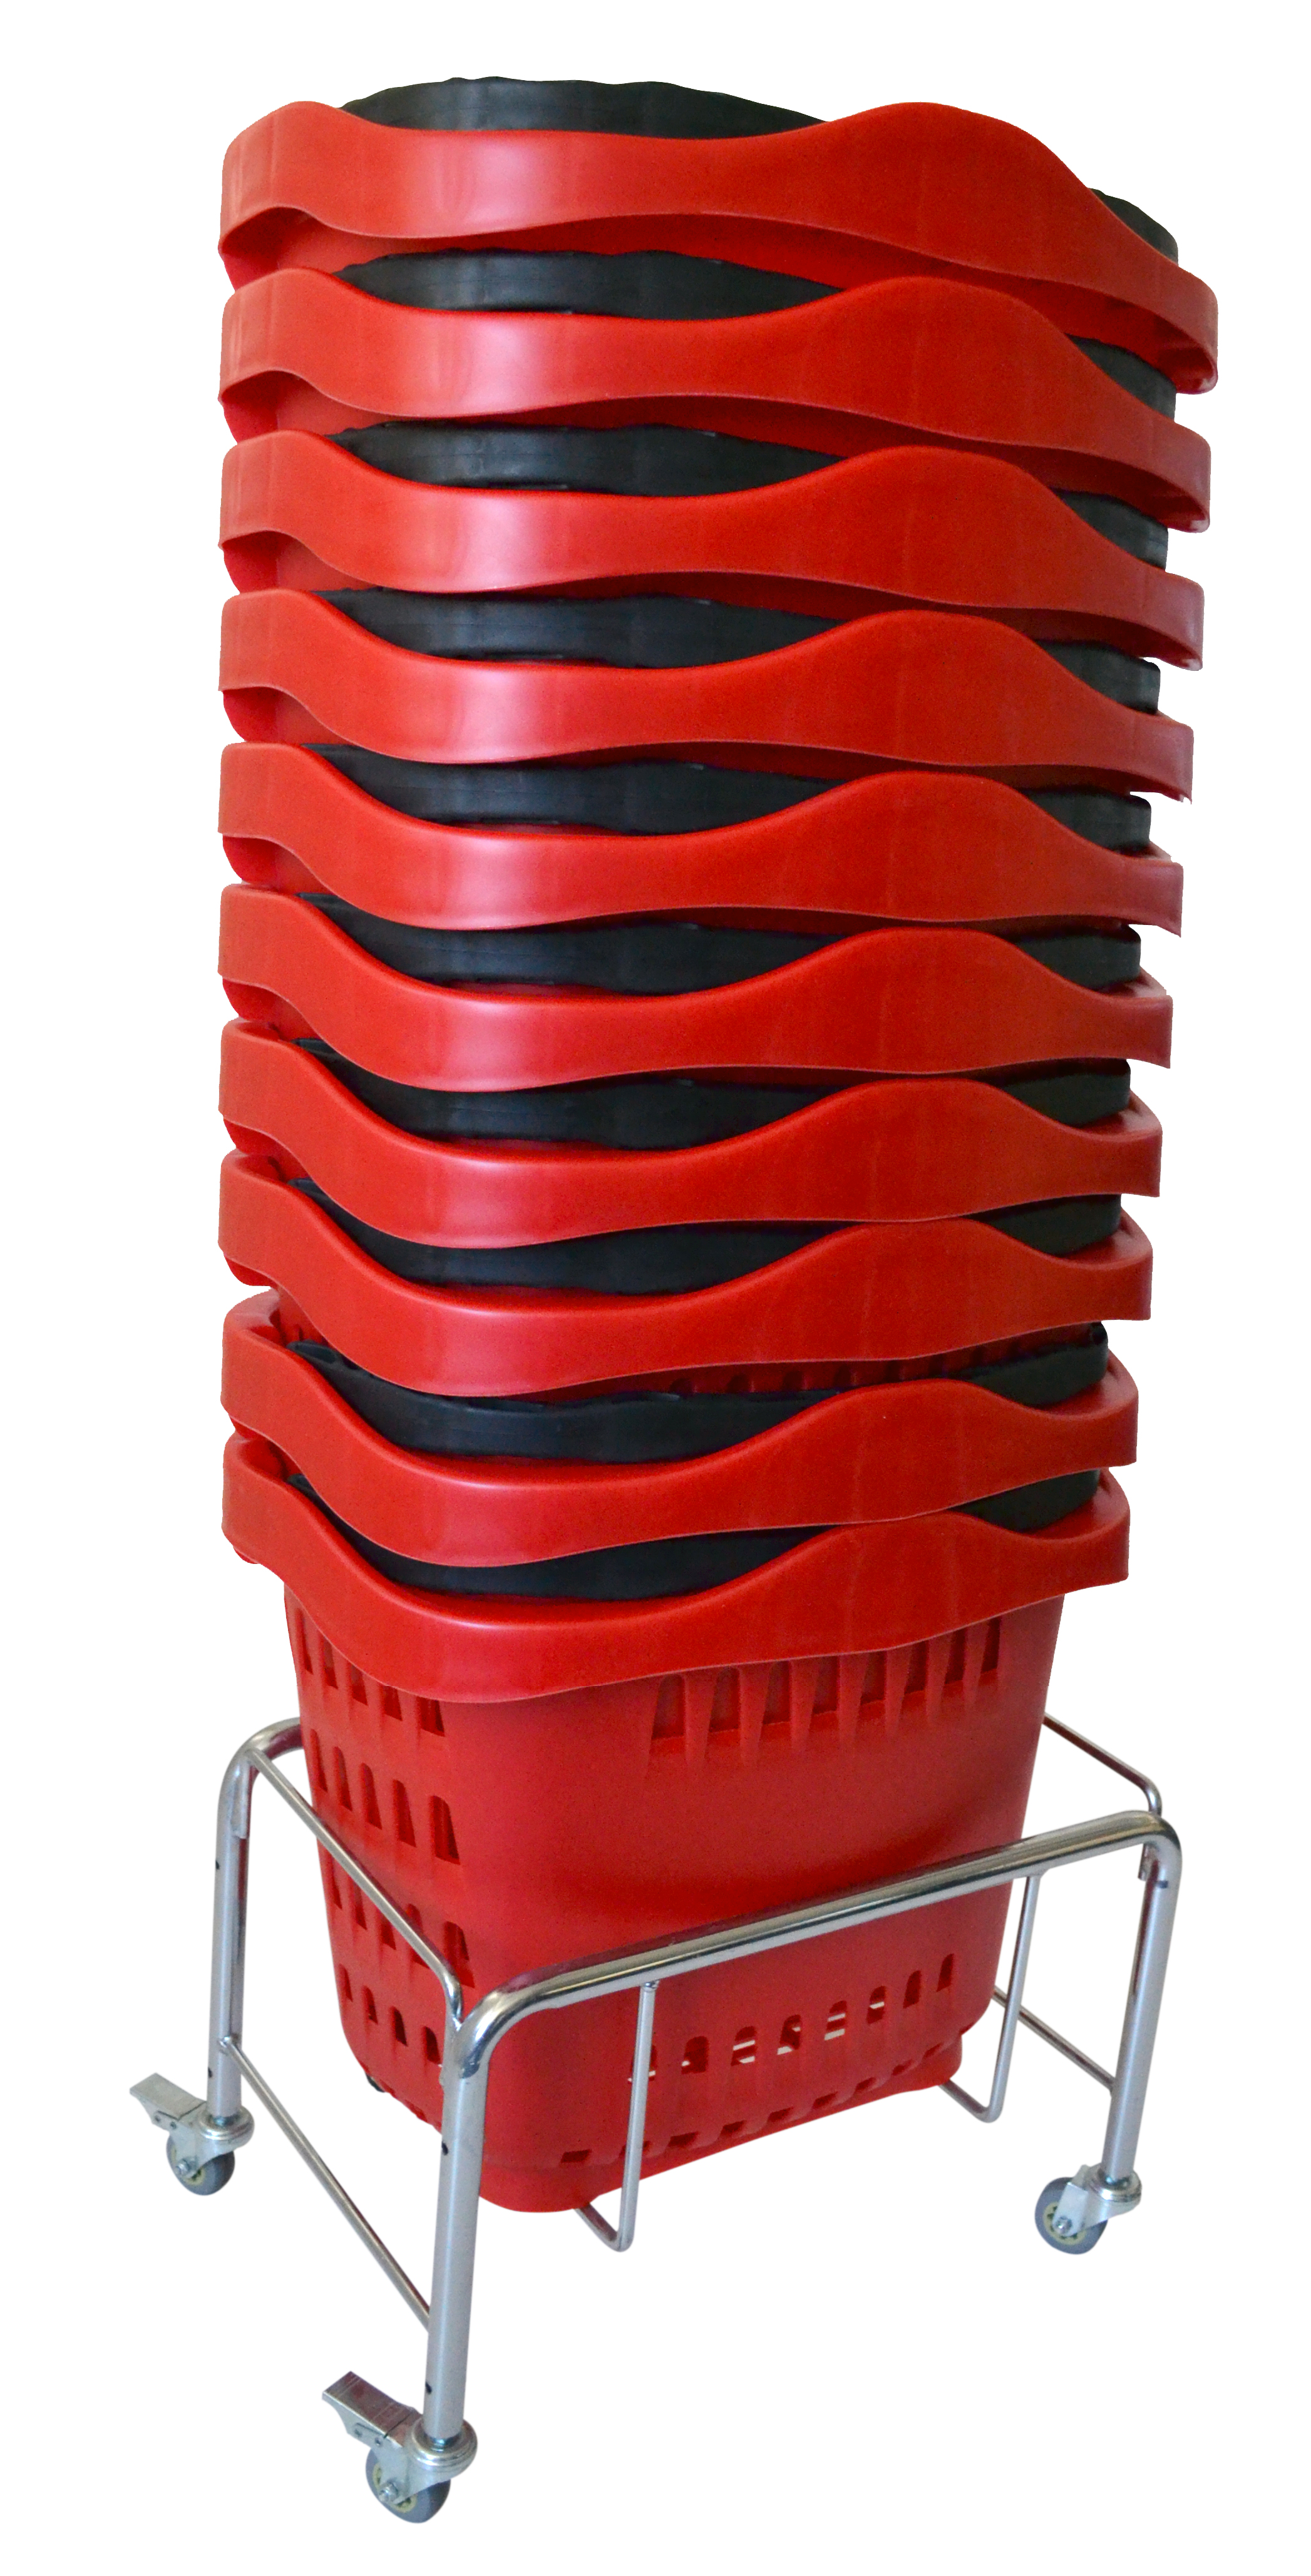 Our shopping basket stands for sale are a must have for any retail store. Keep your shopping baskets neatly stacked & move your metal basket stands with ease. Manufactured with strong heavy duty chrome steel tube and a capacity to hold up to 100kg.